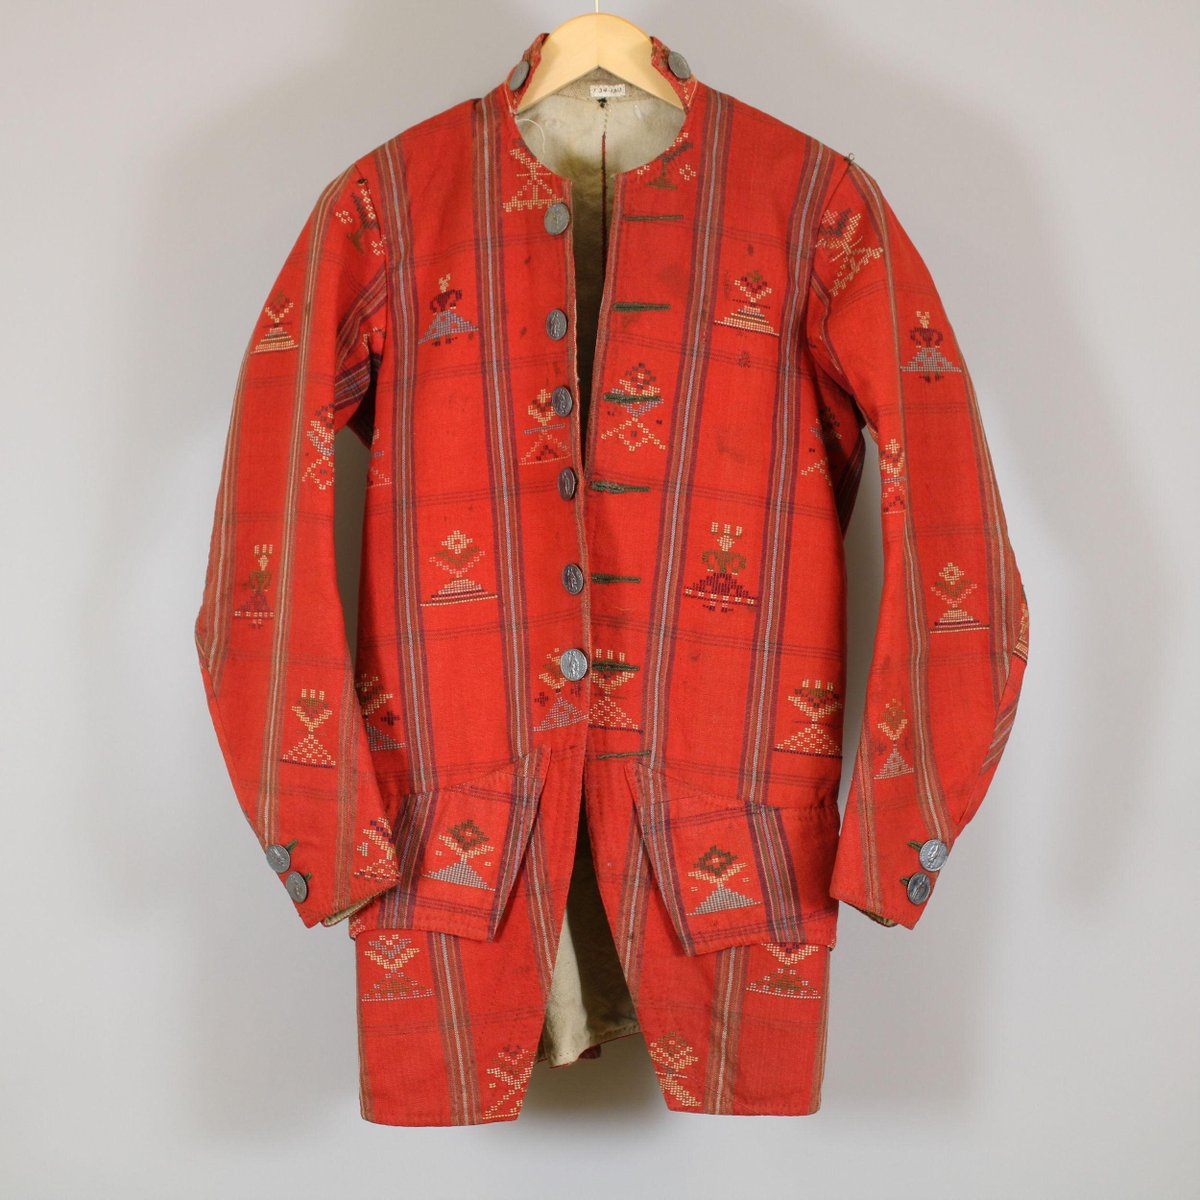 Bridegroom's jacket of red woollen cloth, woven in a pattern of stripes and further embroidered with coloured wools. Part of a Norwegian bridegroom's costume purchased by the donor in 1865 from the original owner. The jacket is skirted and slightly cut away in front, with long narrow sleeves. The pattern is a plaid, partly filled with conventional figures supposed to represent the bride, trees, and floral ornament, repeated diagonally within oblong compartments formed by the plaid. White wool lines the jacket. © V&A museum